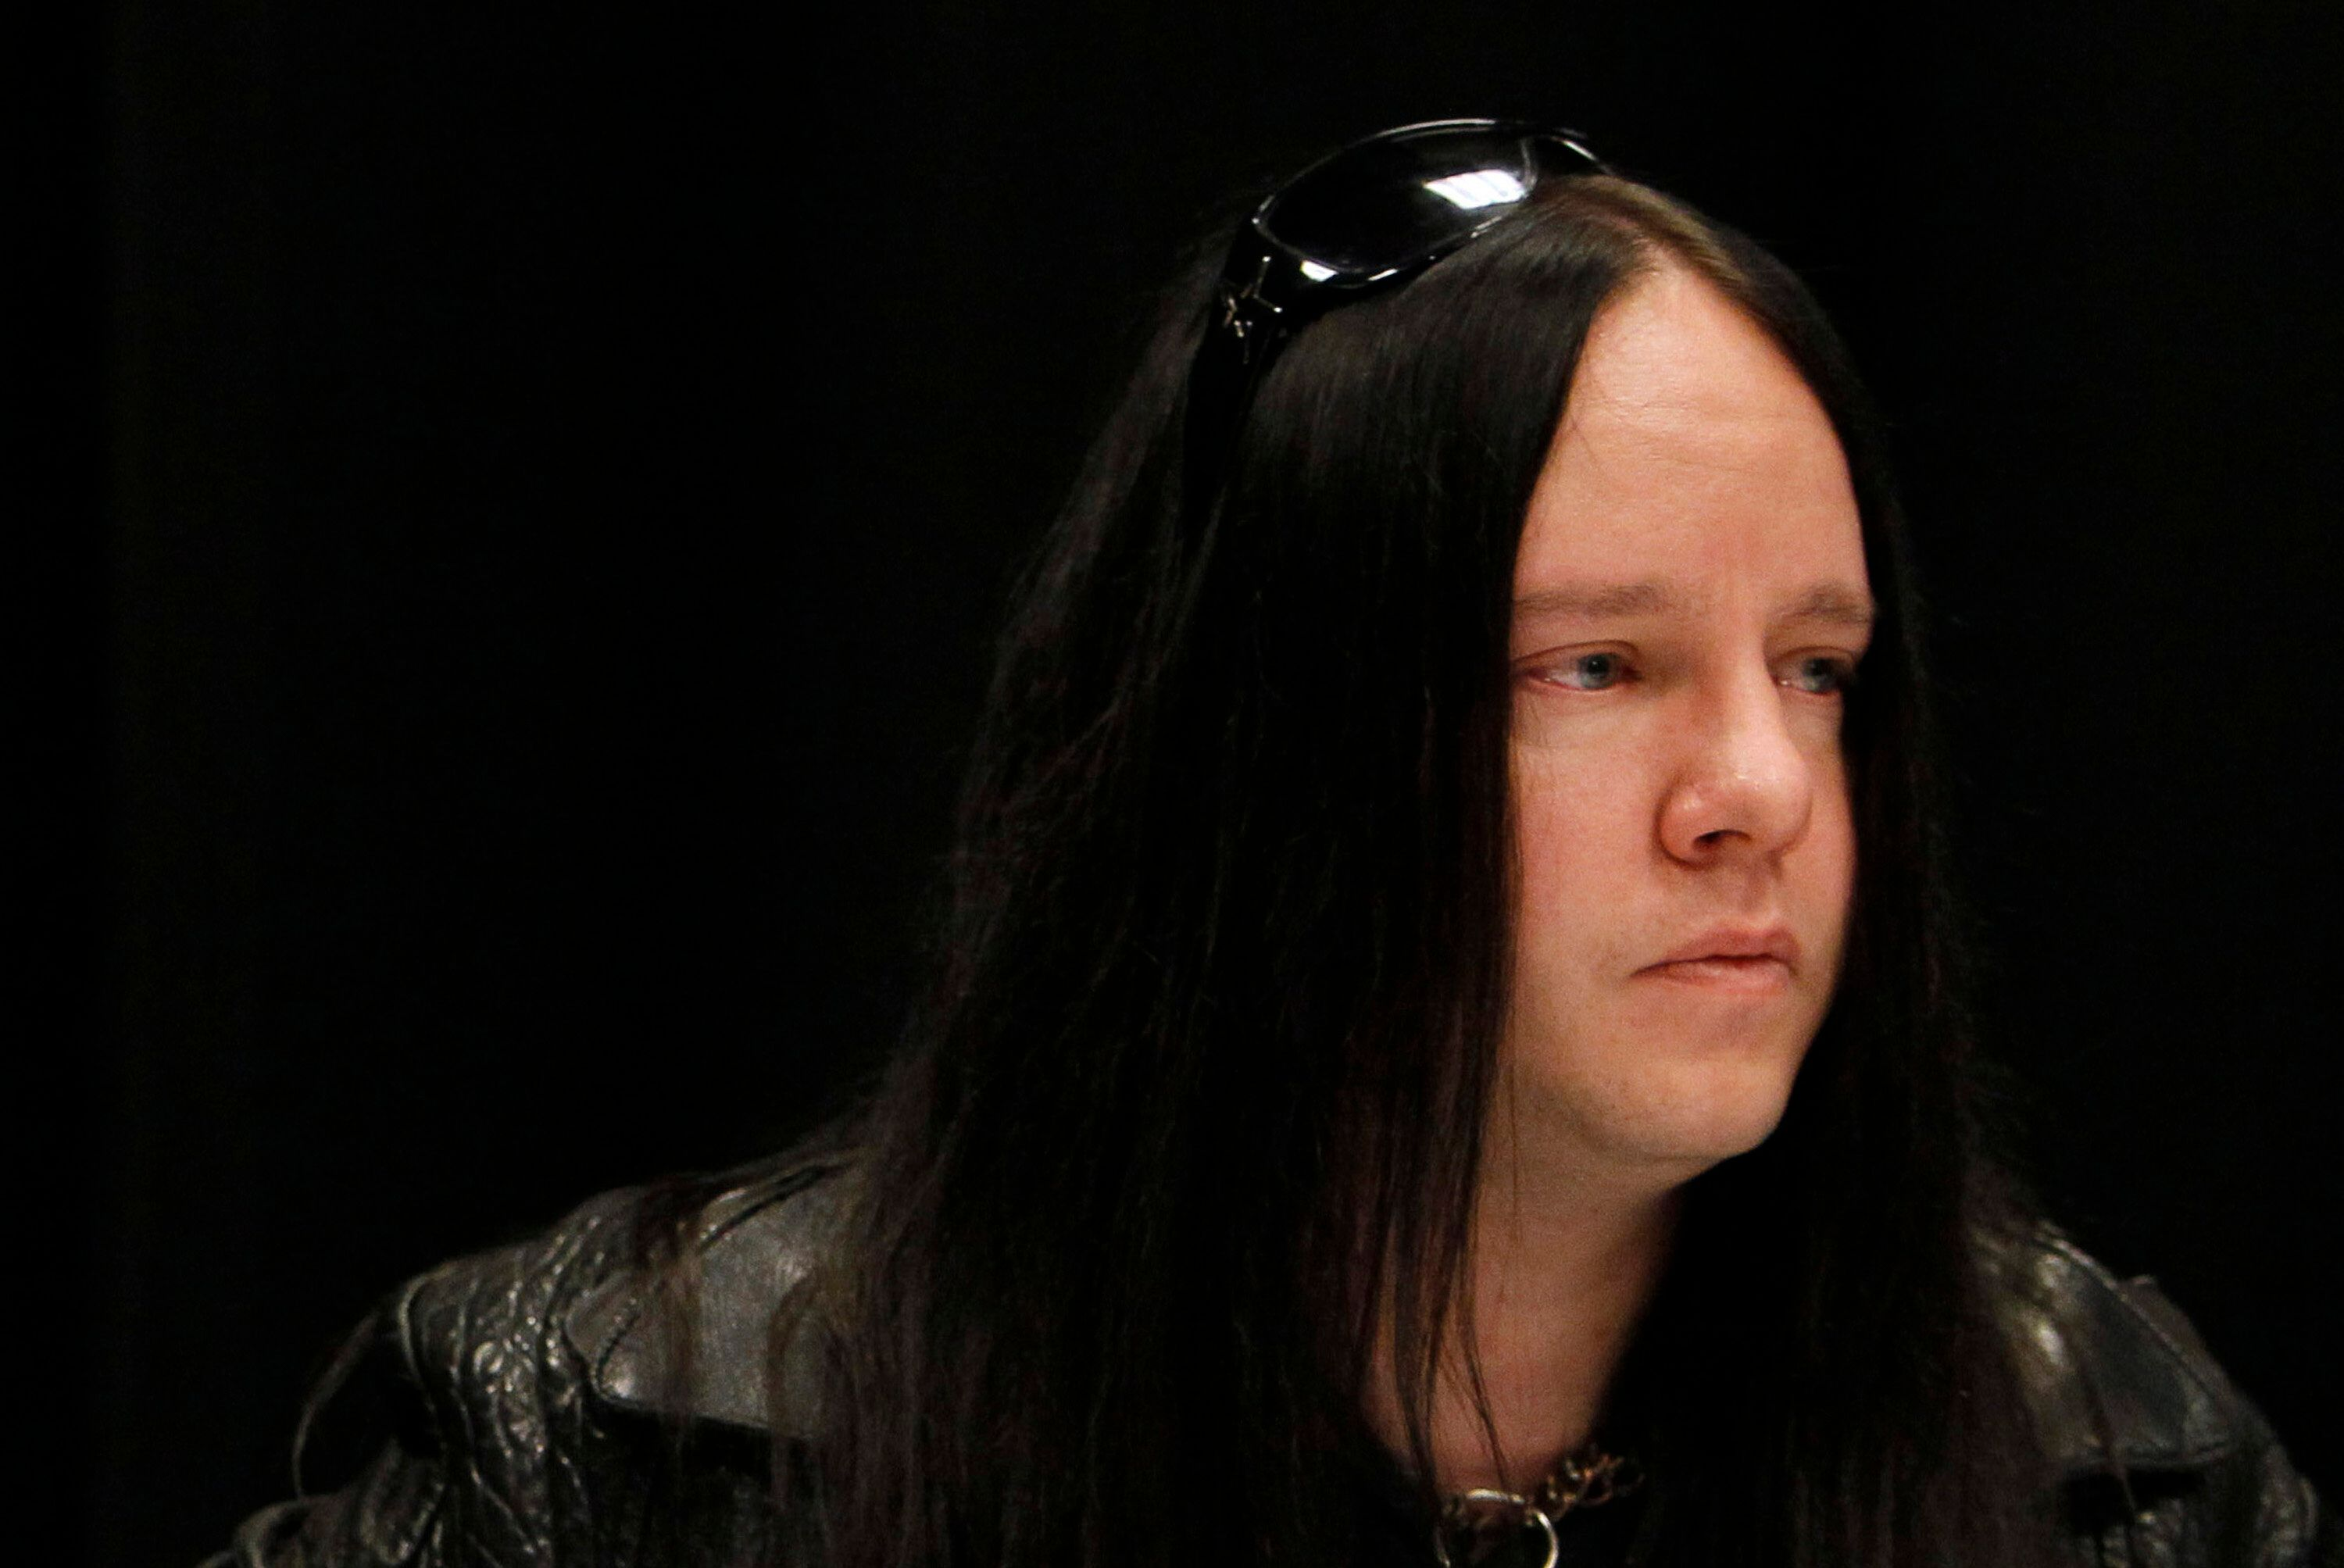 Drummer Joey Jordison, a founding member of the metal band Slipknot, died Monday. He was 46.